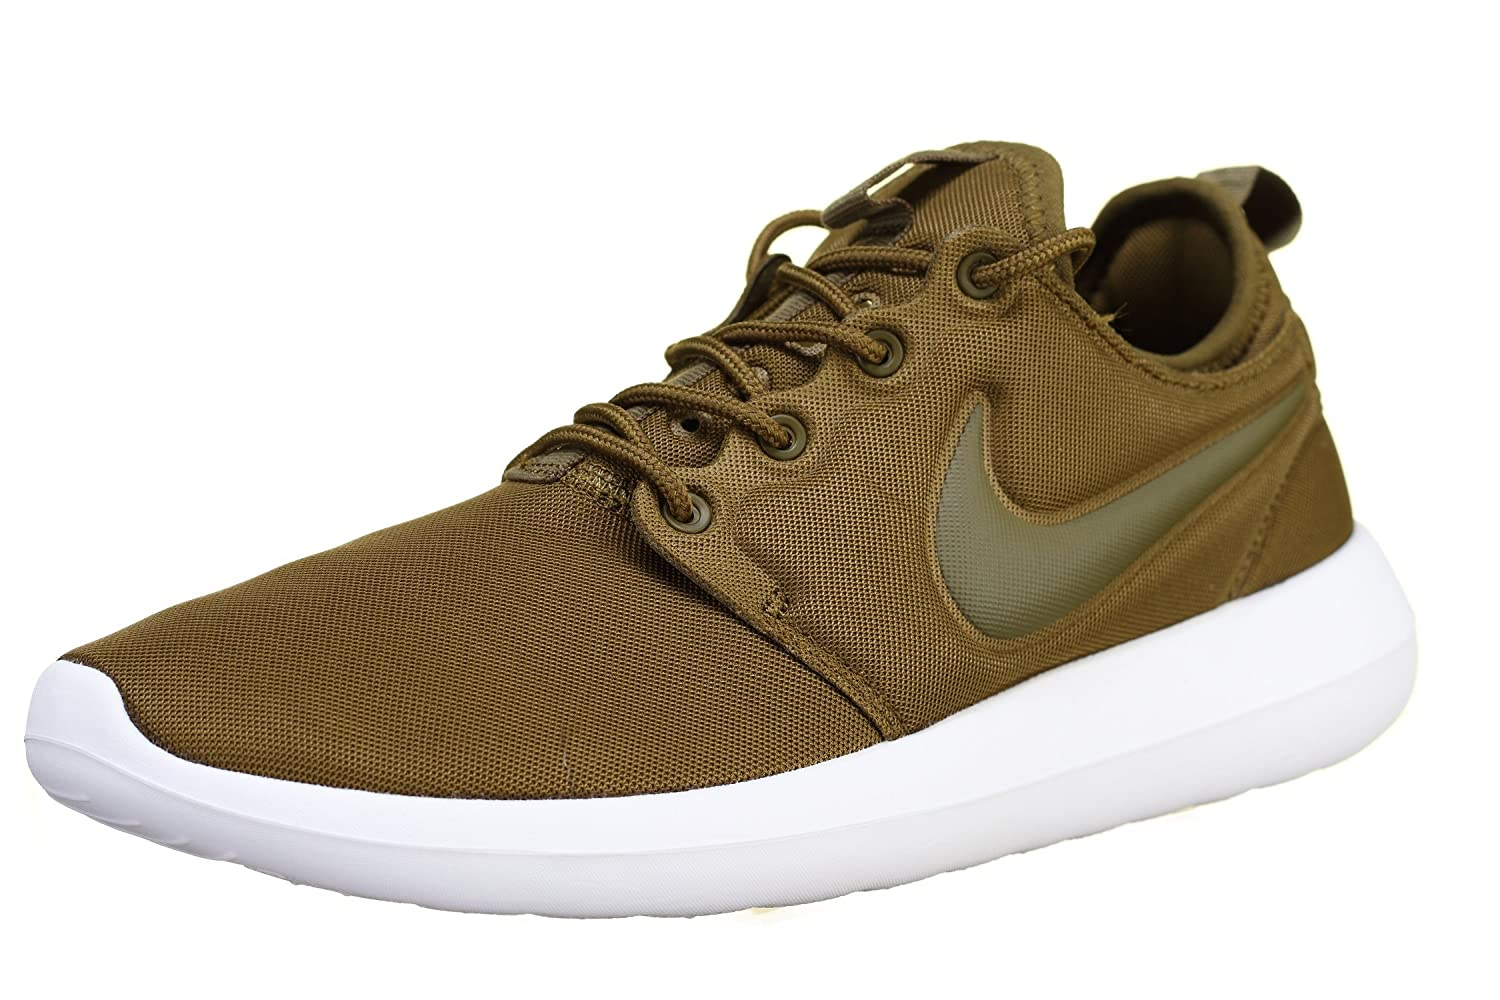 NIKE Women's Roshe Two Running Shoe B01LGFXZ2W 6.5 B(M) US|Green